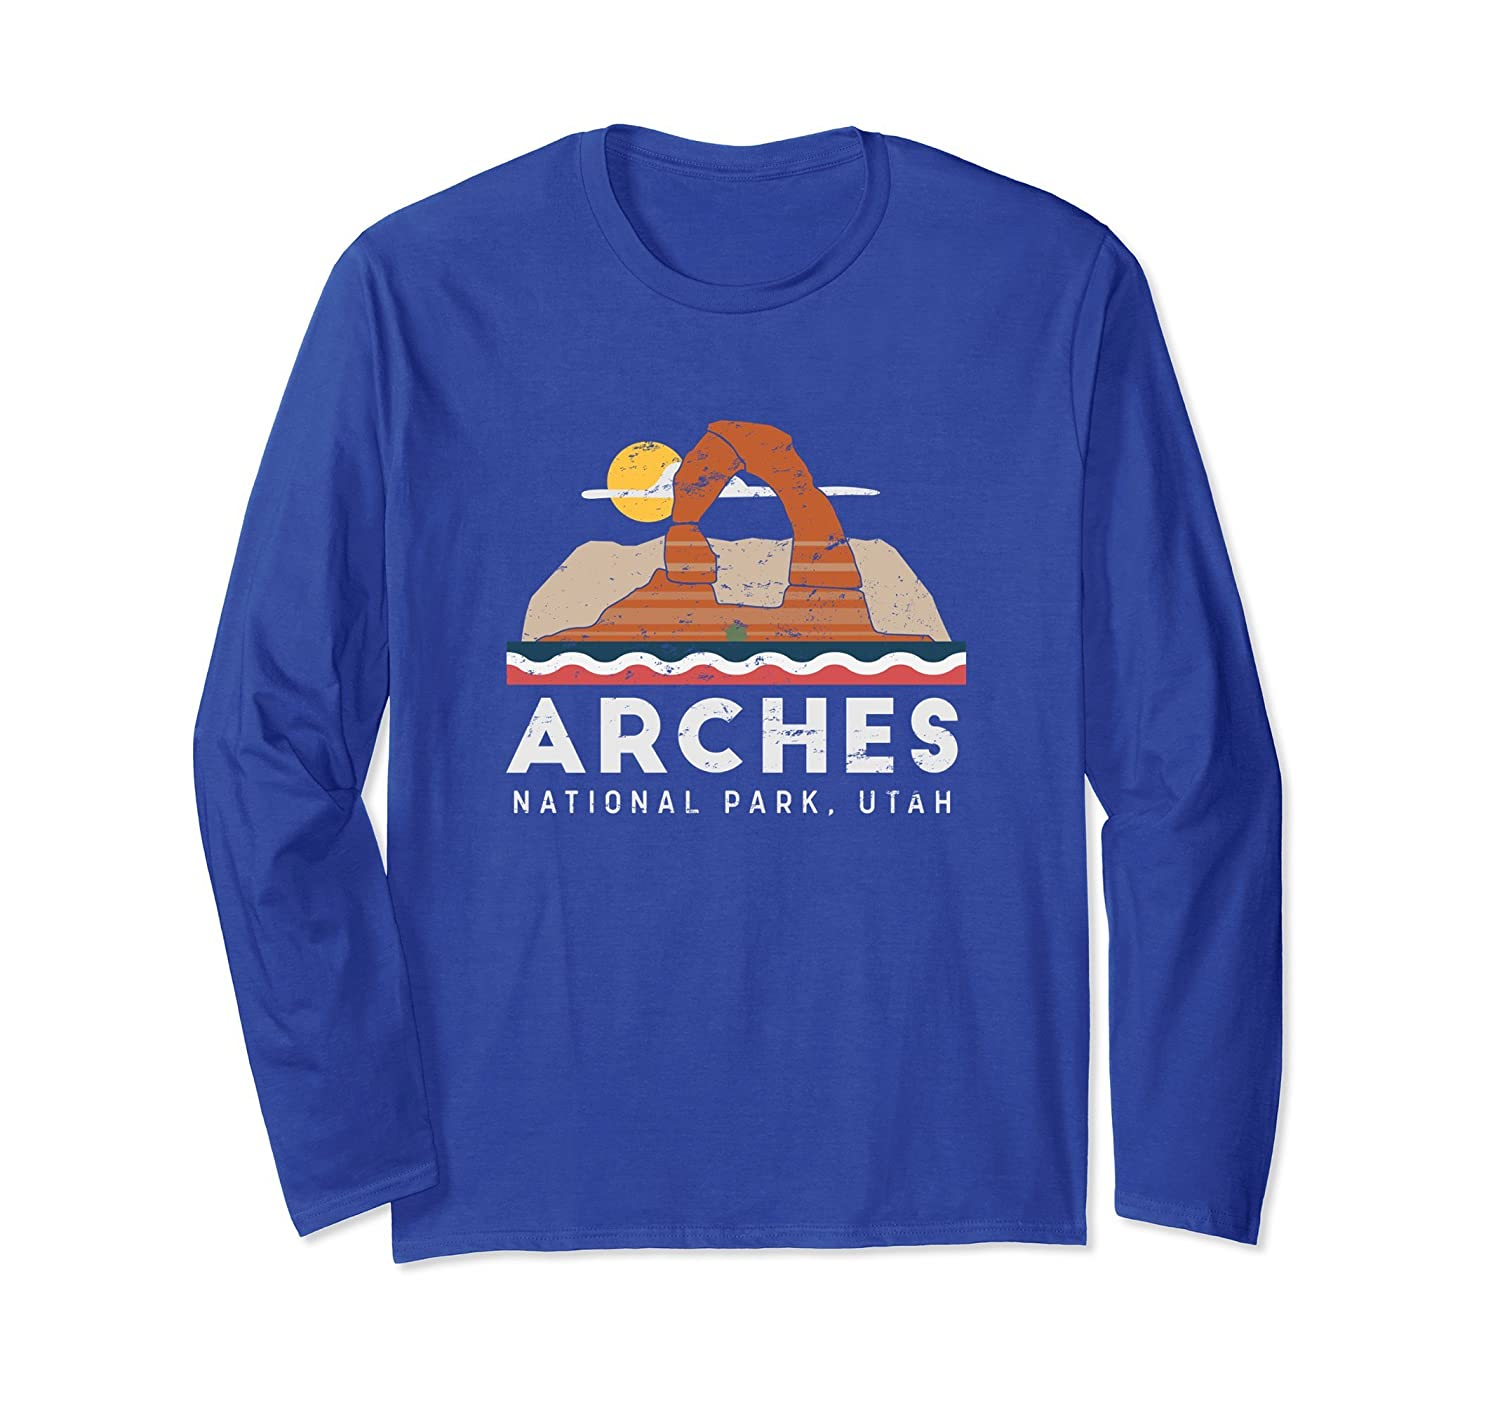 Arches National Park Long Sleeve T Shirt-ah my shirt one gift